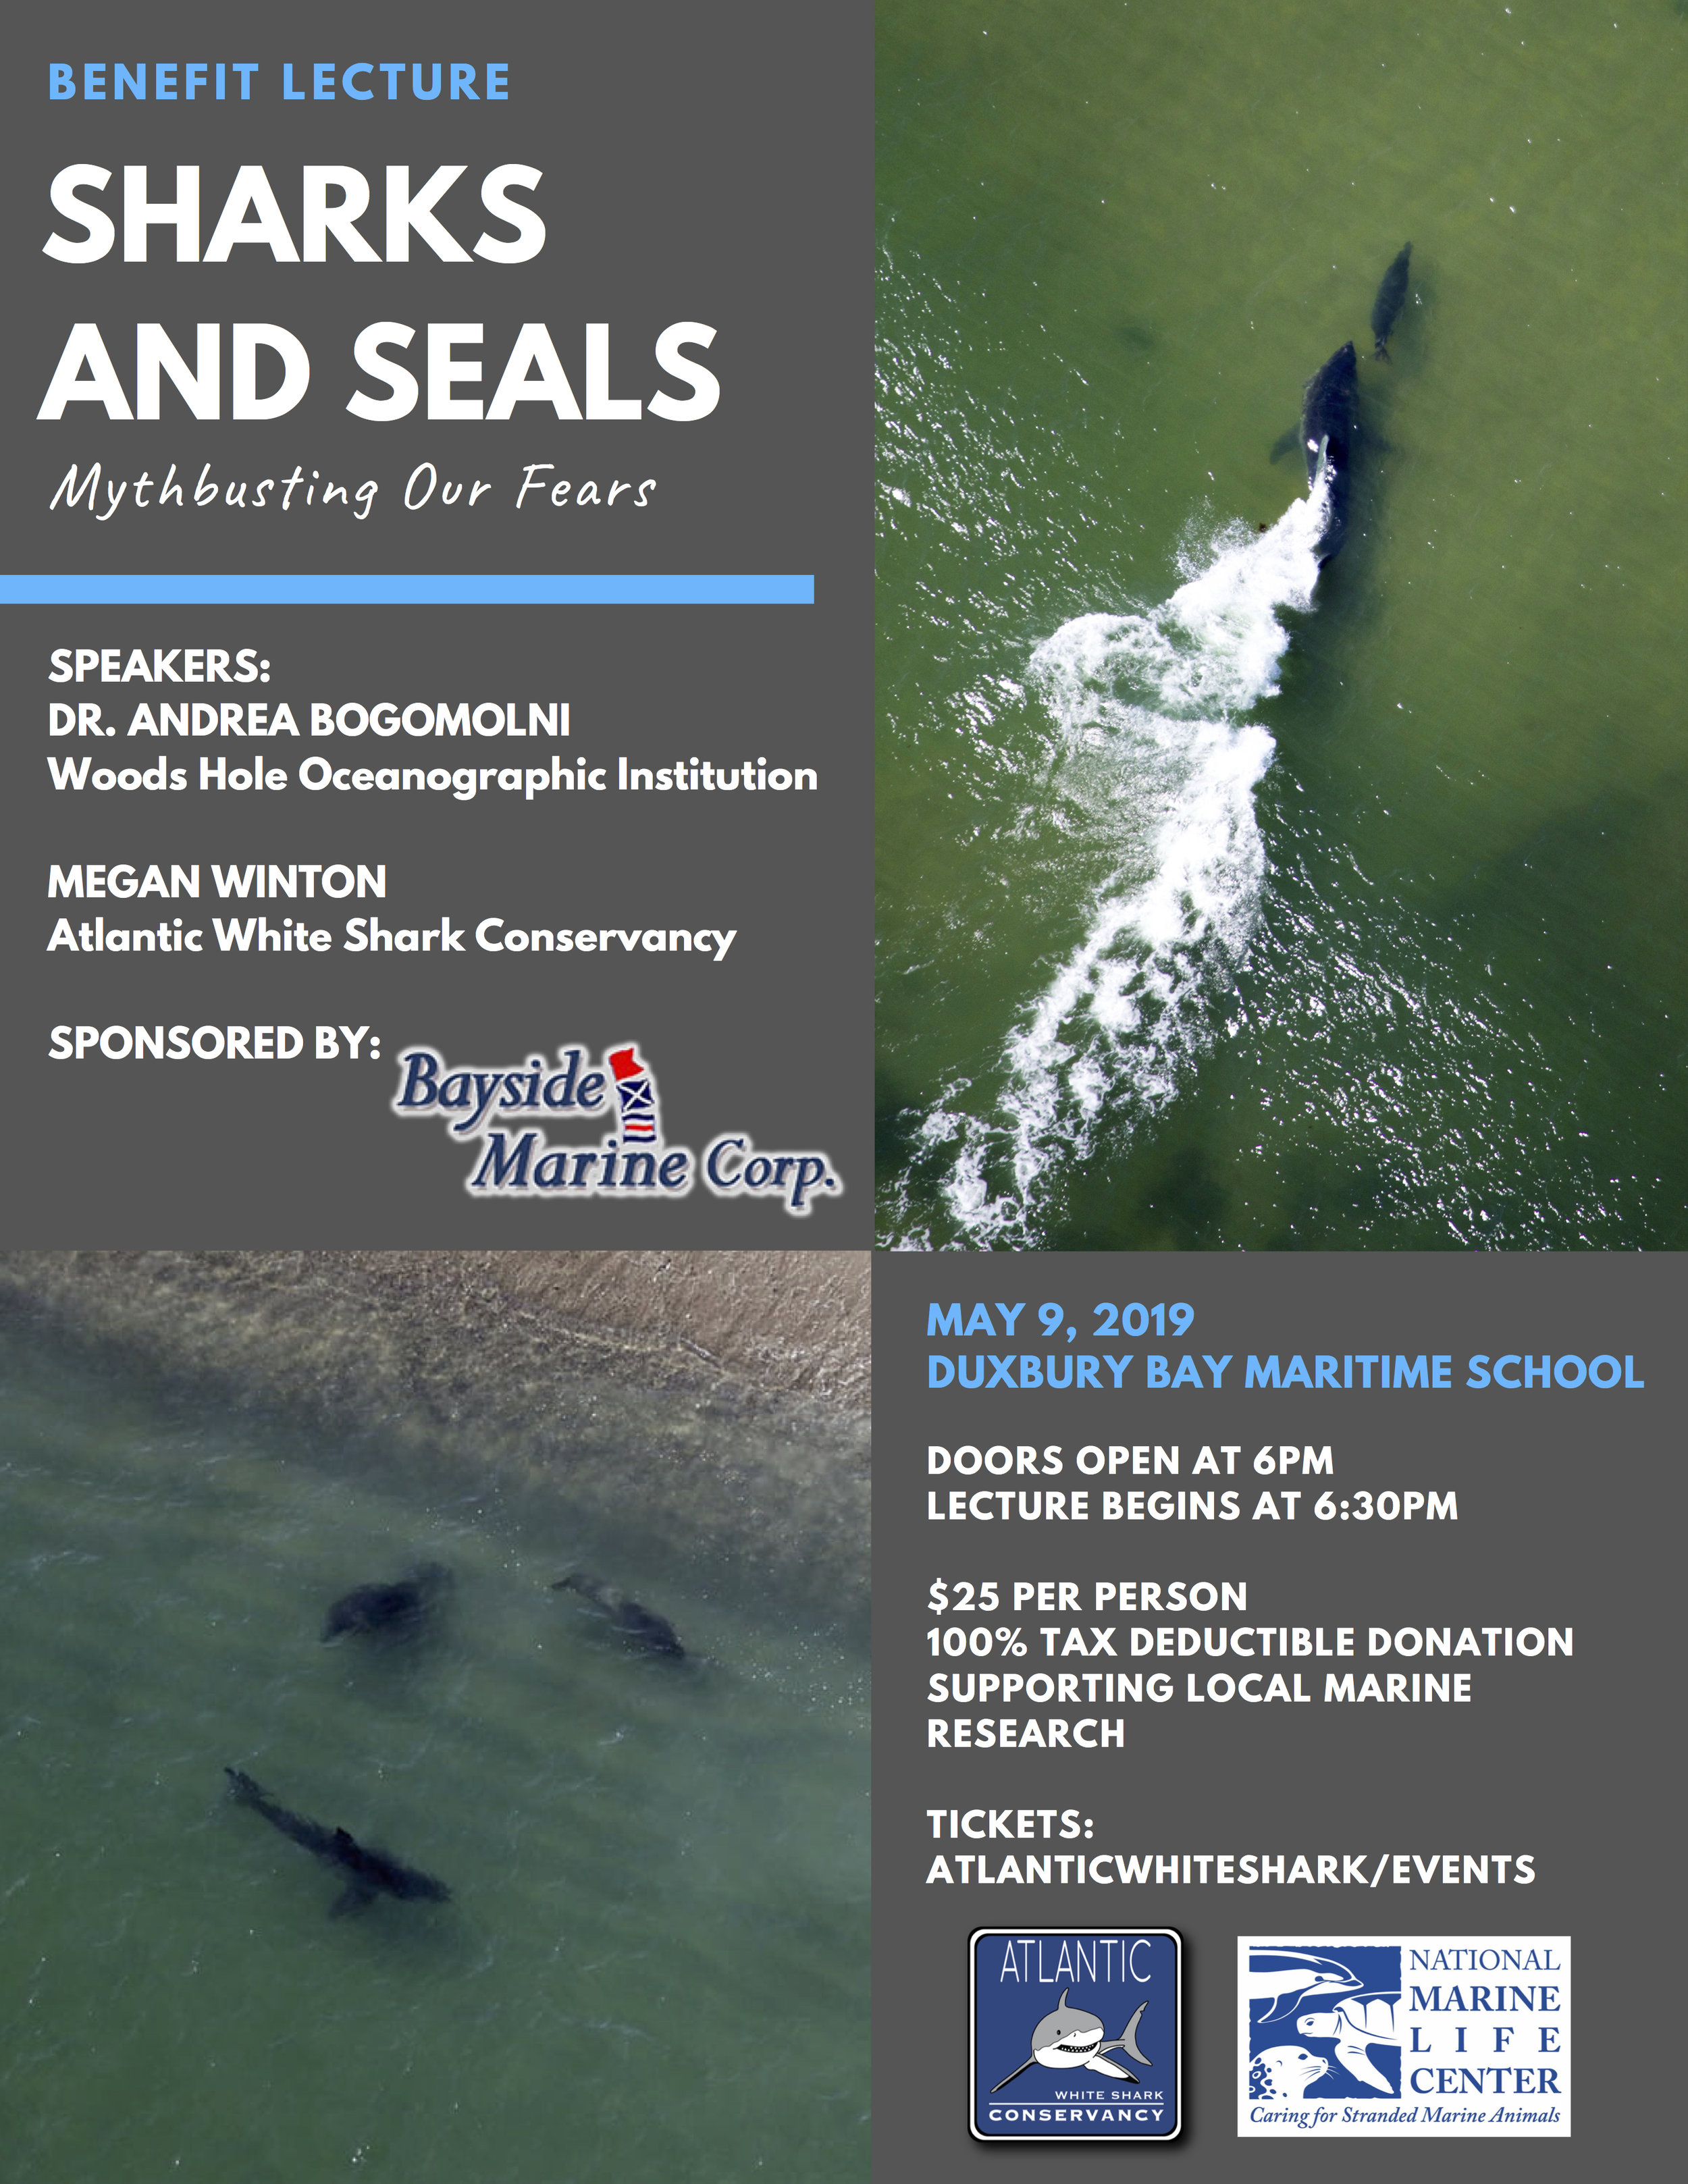 Sharks & Seals Flyer.jpg